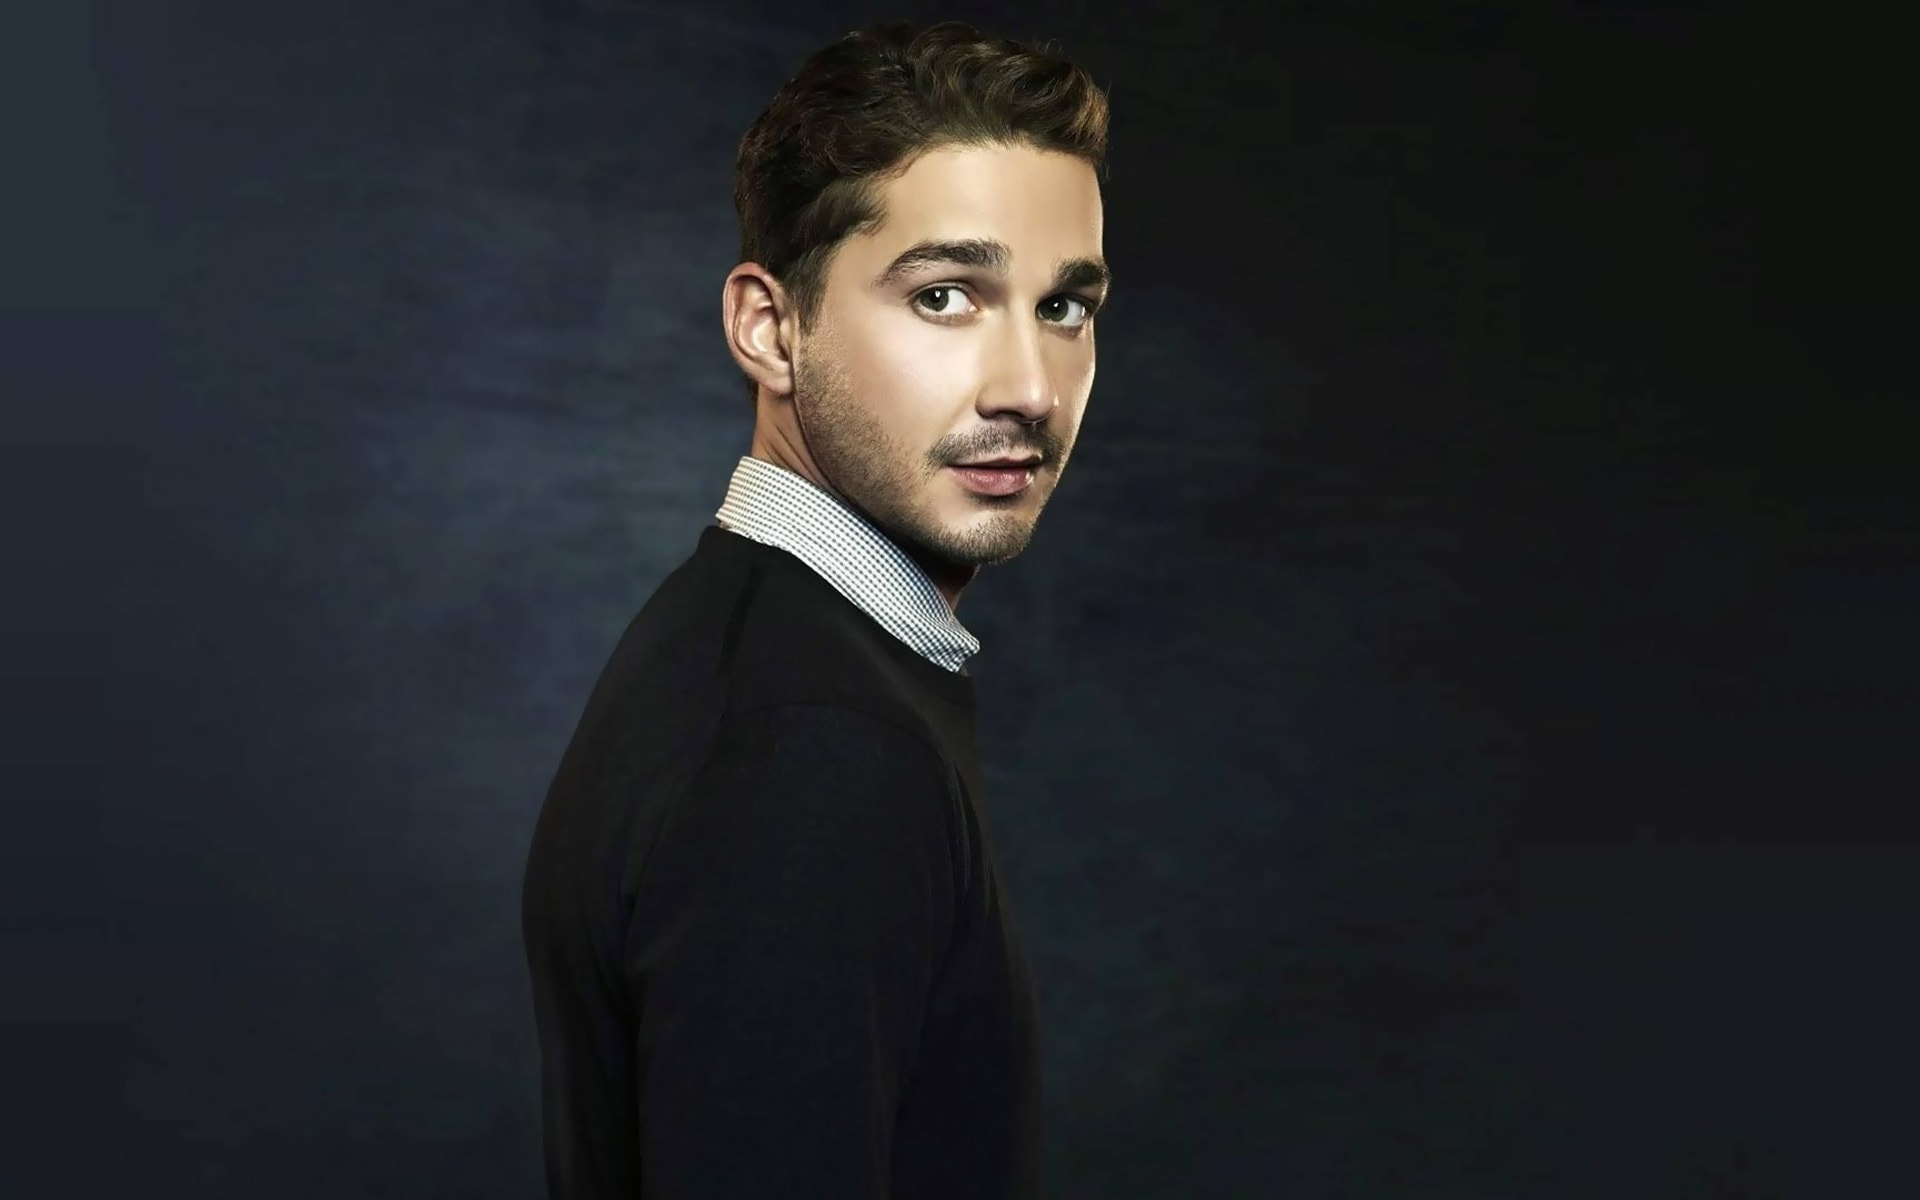 Shia Labeouf HQ wallpapers